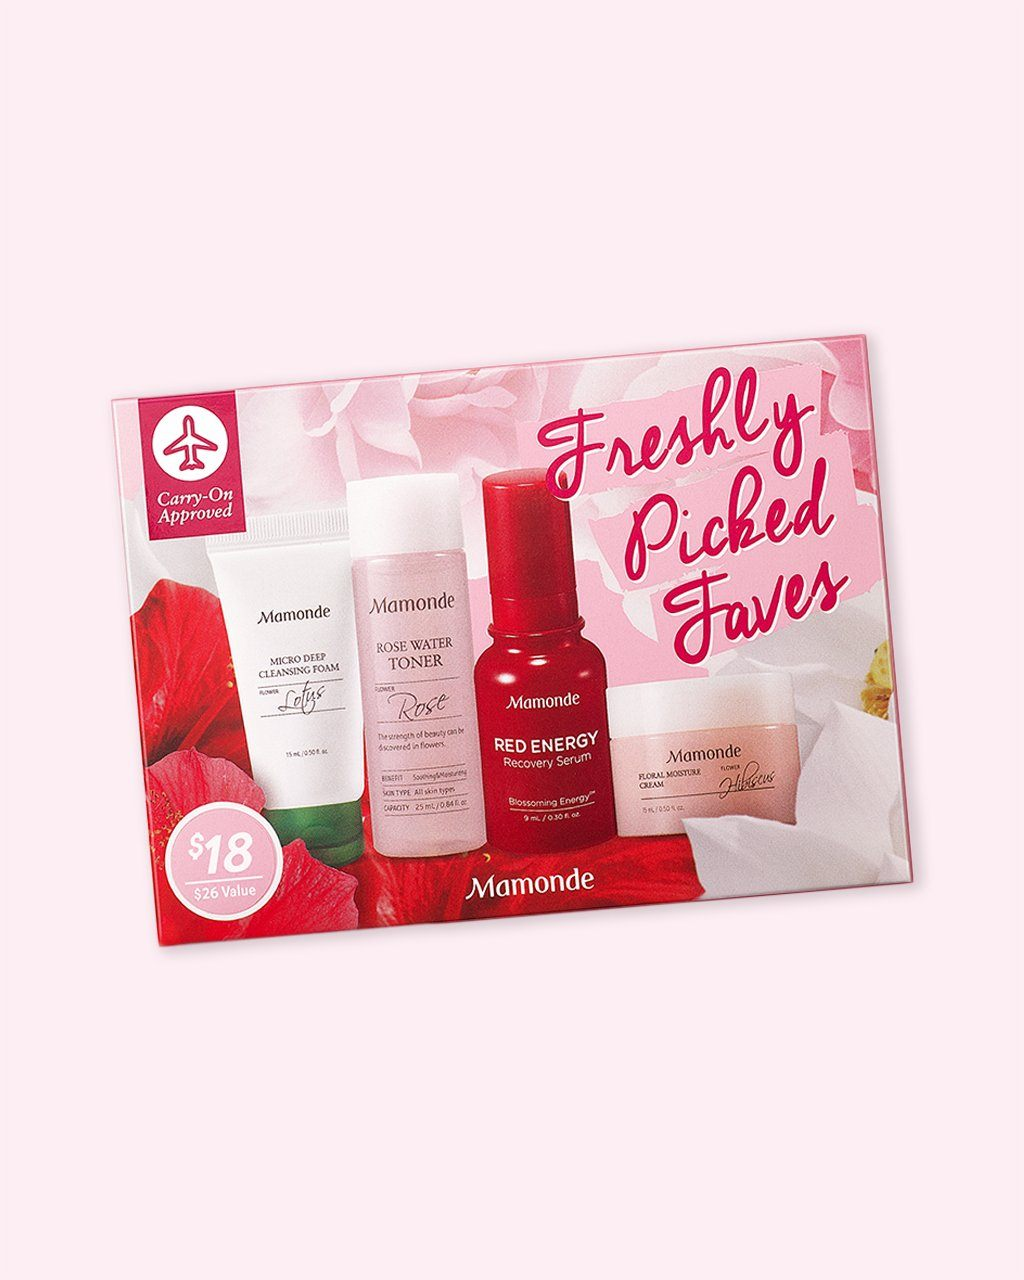 Freshly Picked Faves Kit